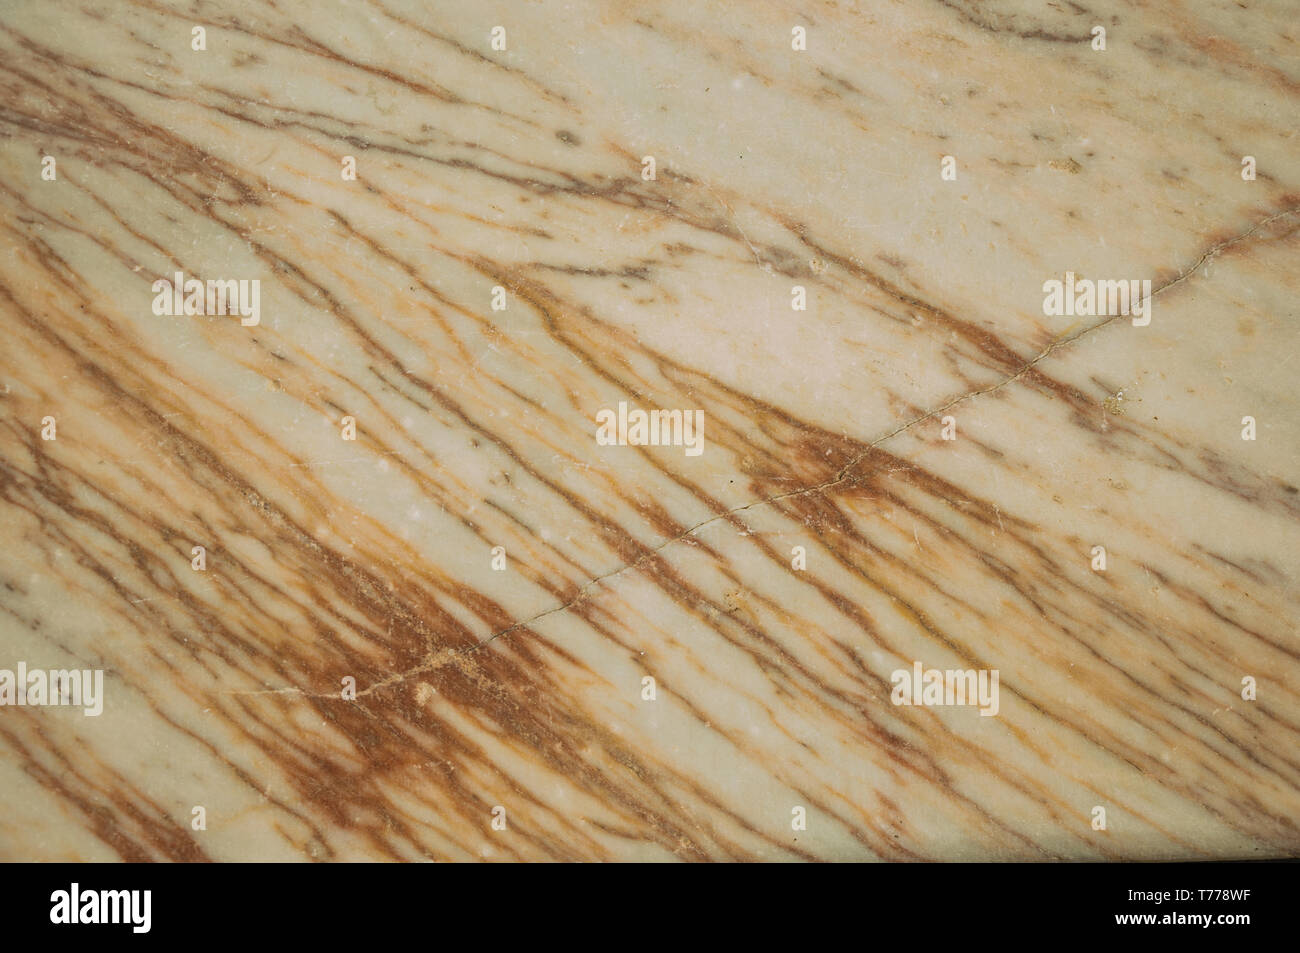 Close-up of old marble surface with veins and some cracks and chipped at Campo Maior. A town with medieval influences in eastern Portugal. Stock Photo